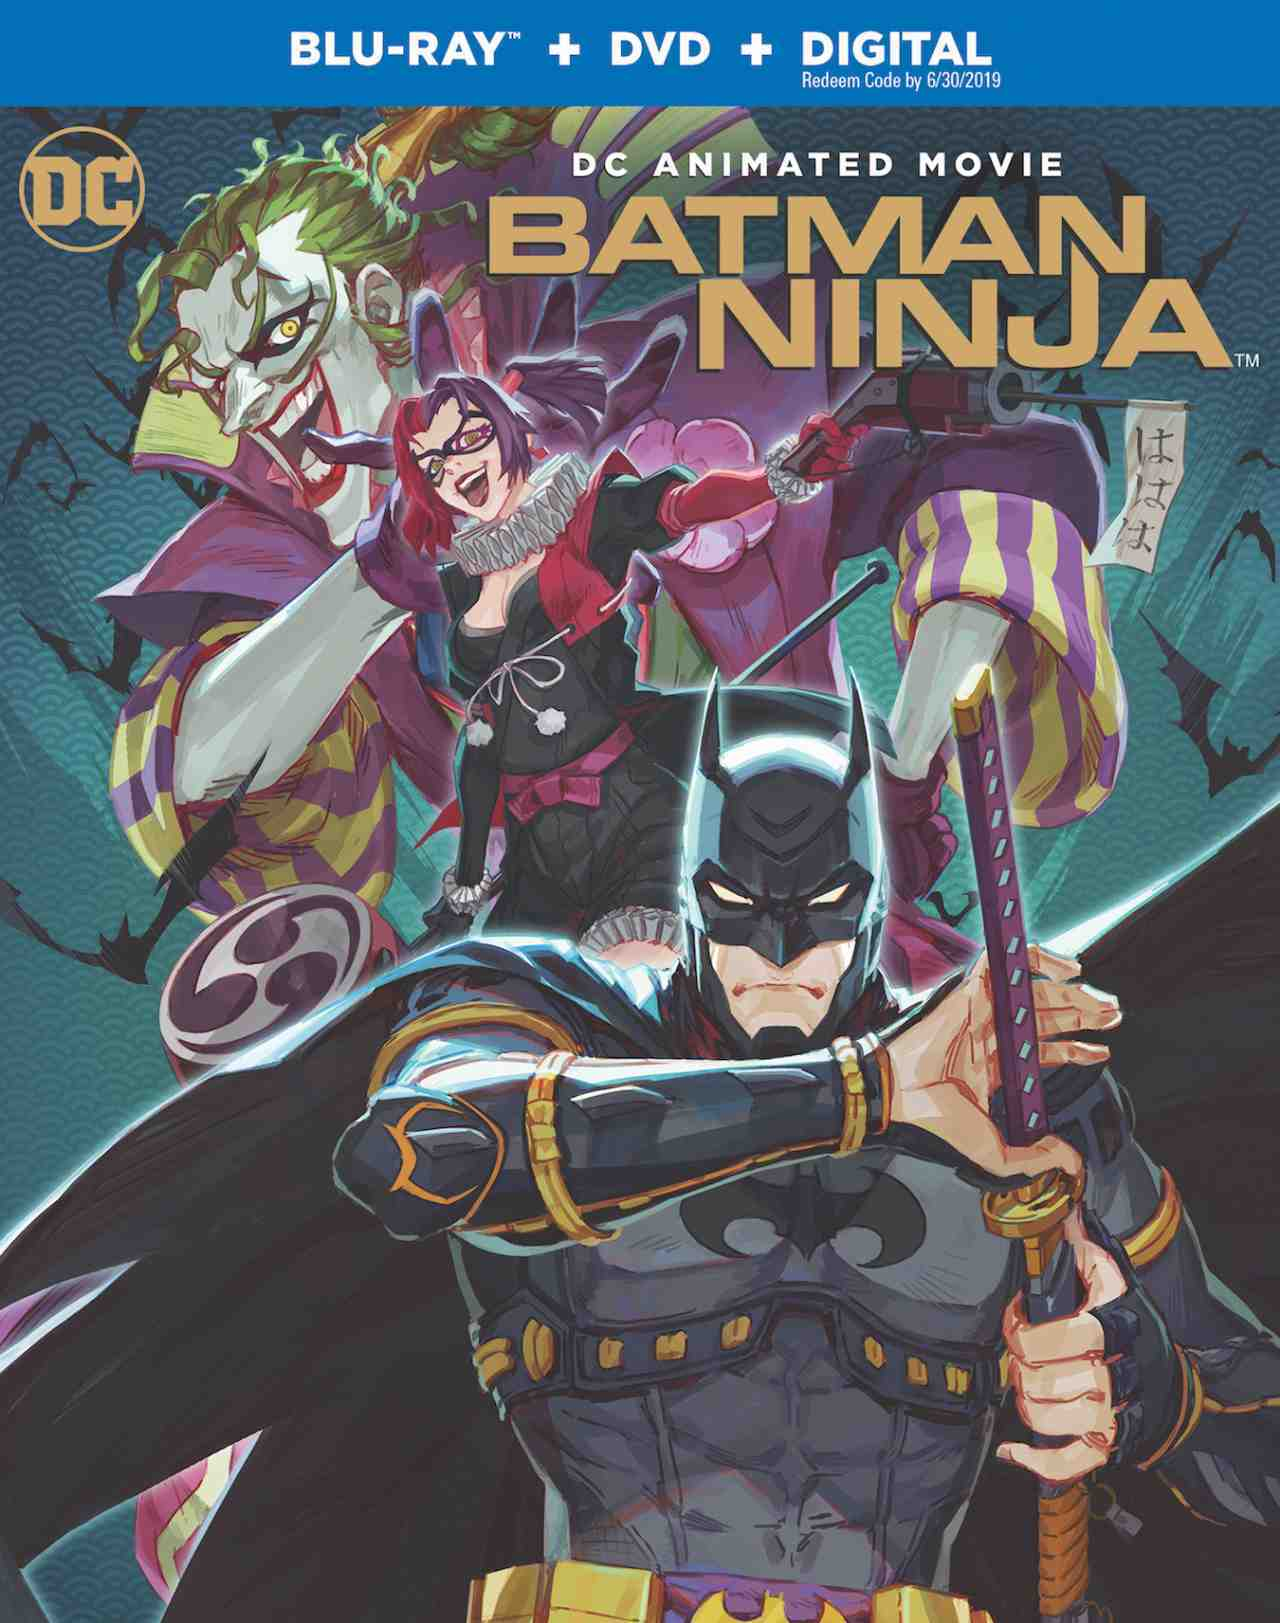 Batman Ninja - Blu-ray cover